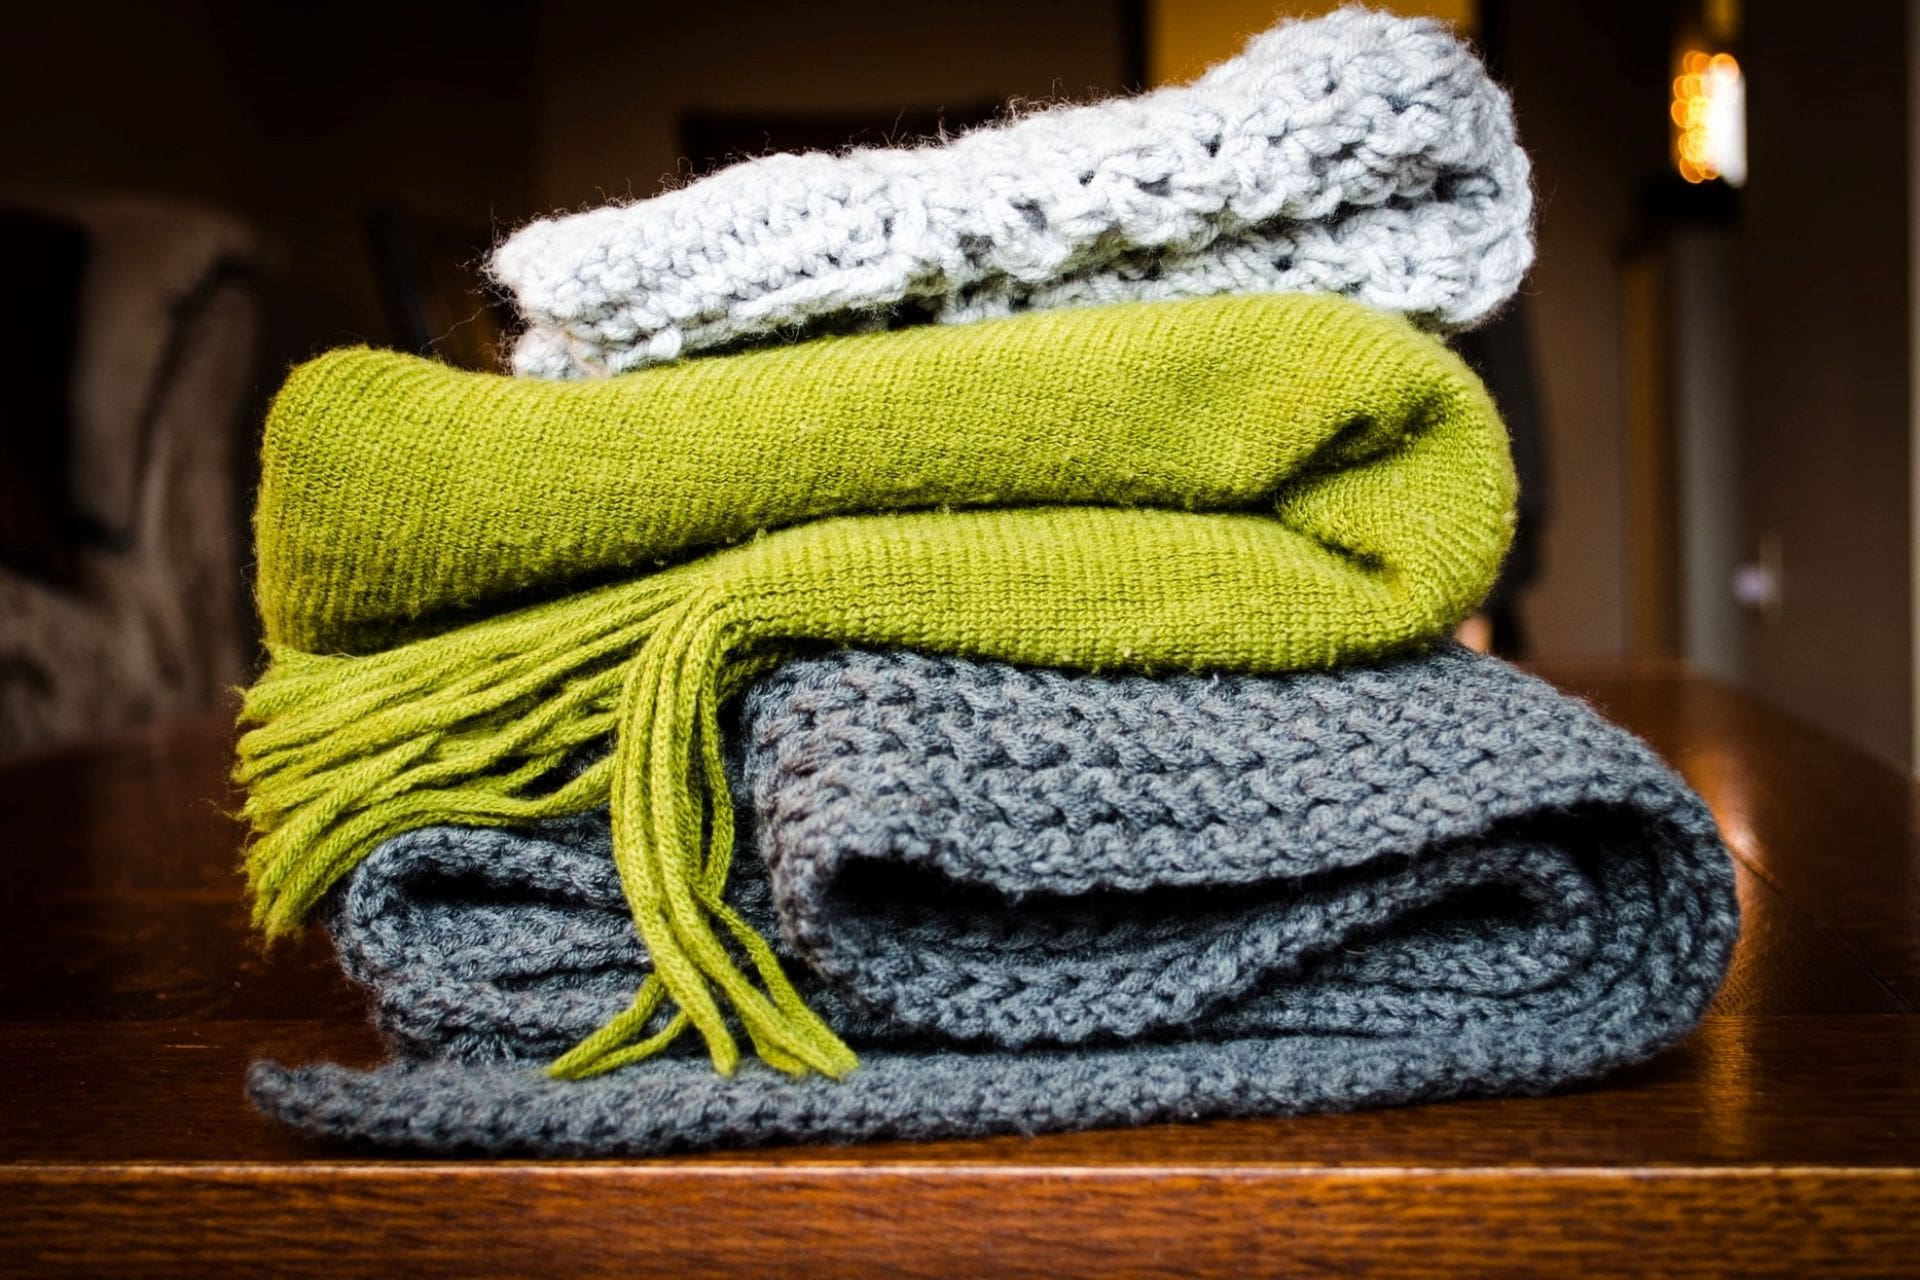 warm-woolen-knitted-scarves-folded-up-on-table